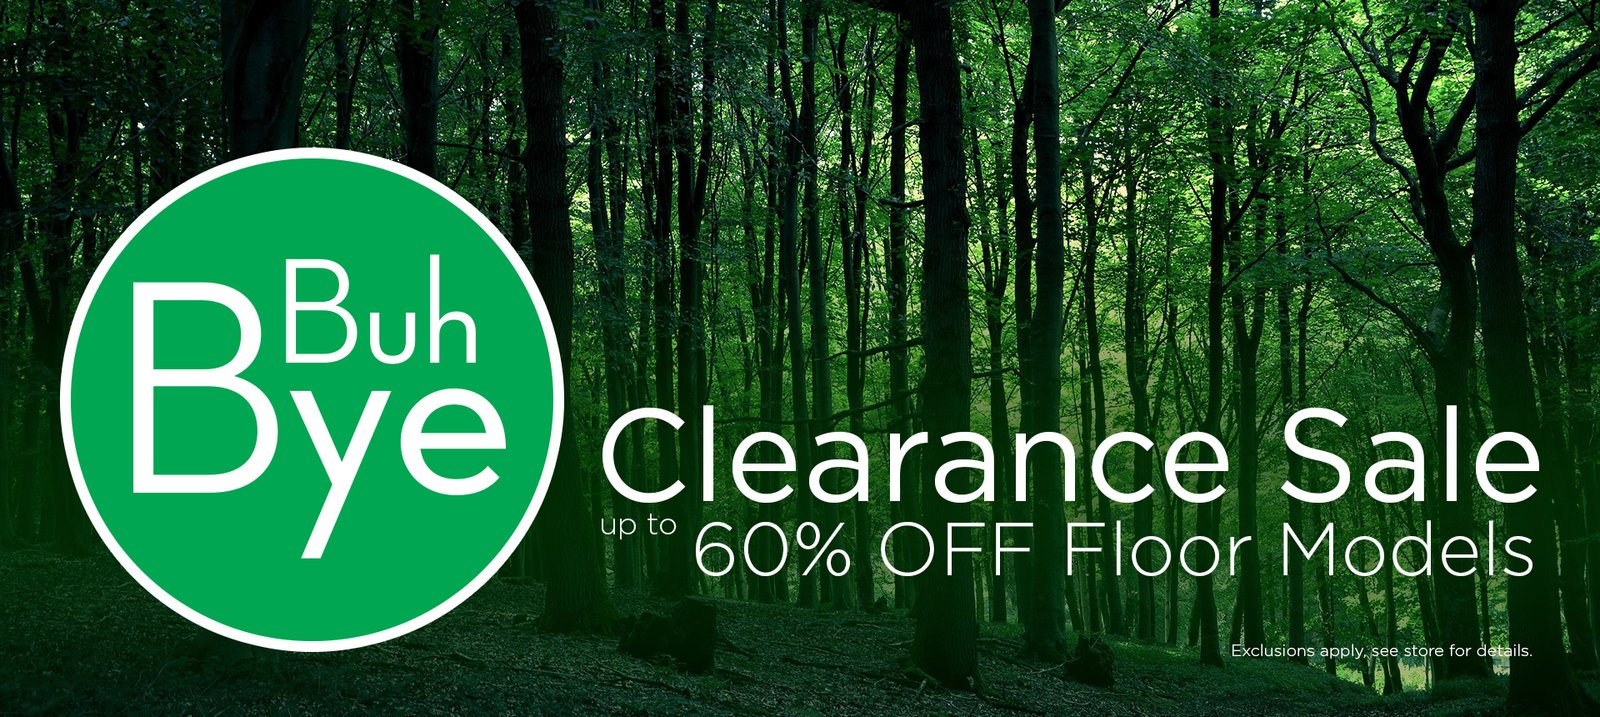 Floor Models Clearance Sale